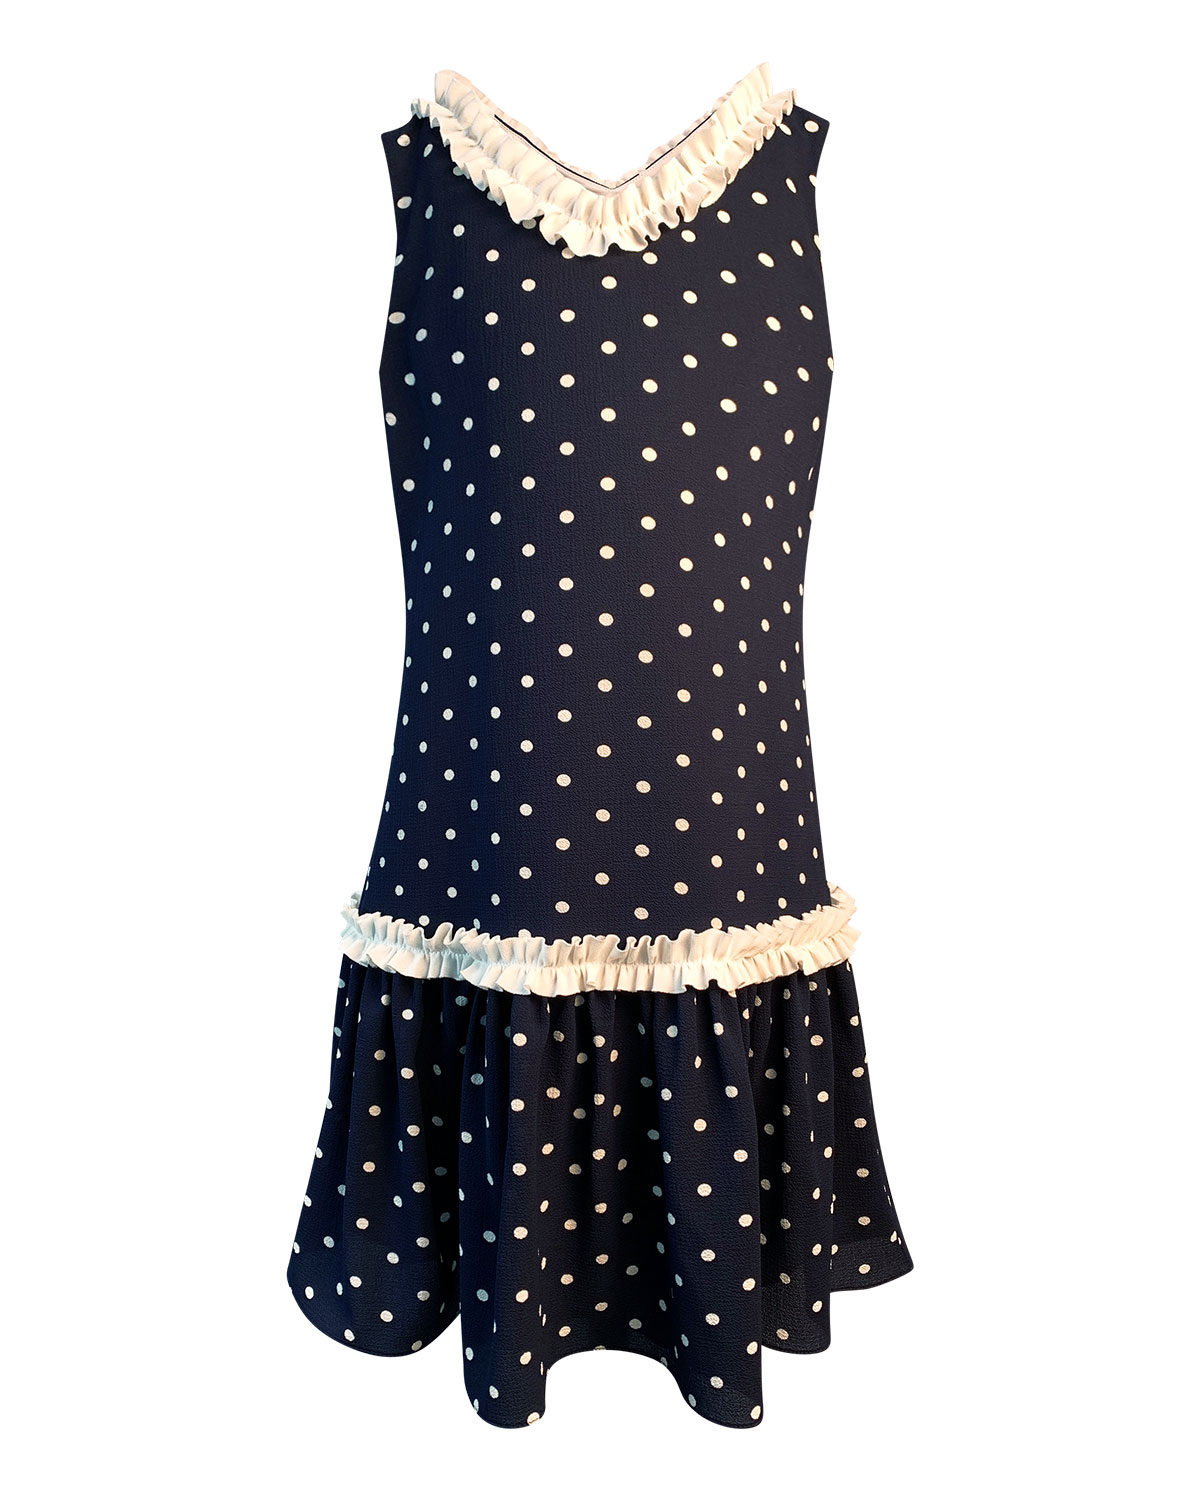 Helena Girl's Polka-Dot Ruffle-Trim Sleeveless Dress, Size 4-6